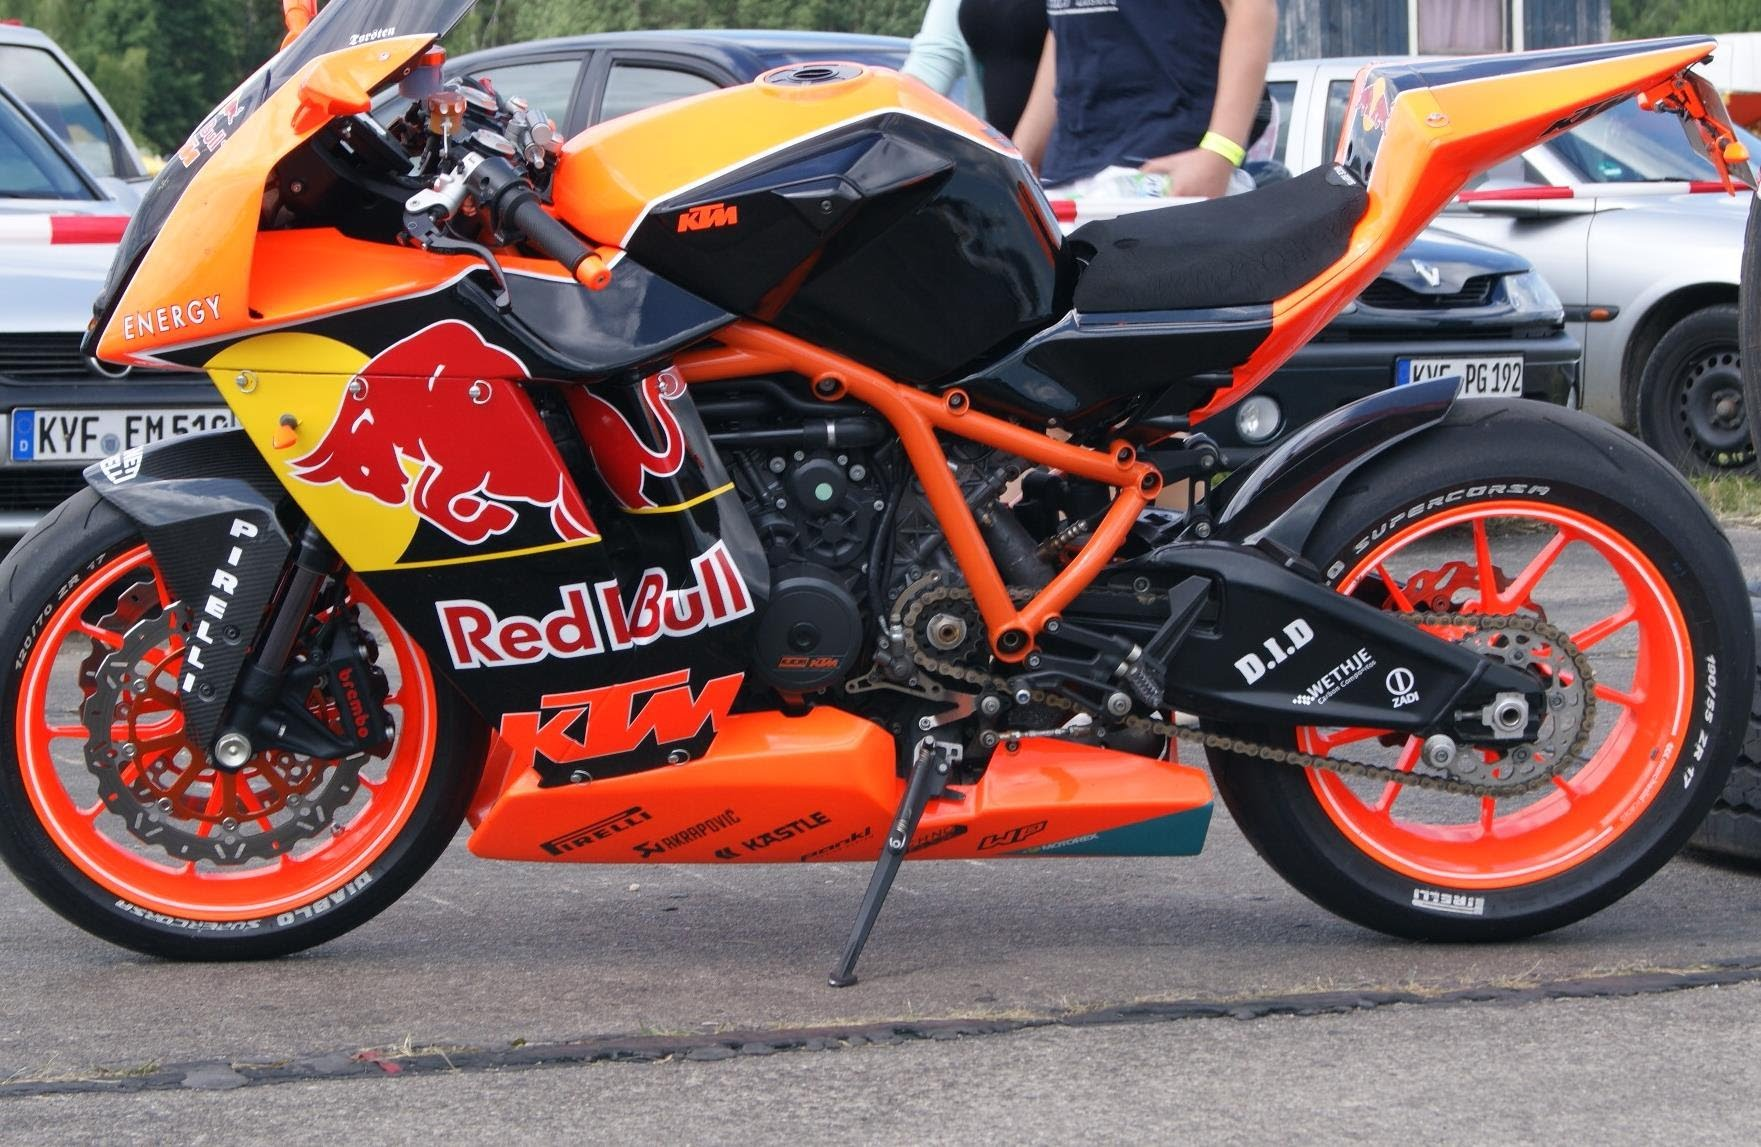 hight resolution of ktm ktm 1190 rc8 r red bull moto zombdrive com ktm rc8 red bull wiring harness wiring diagram wiring